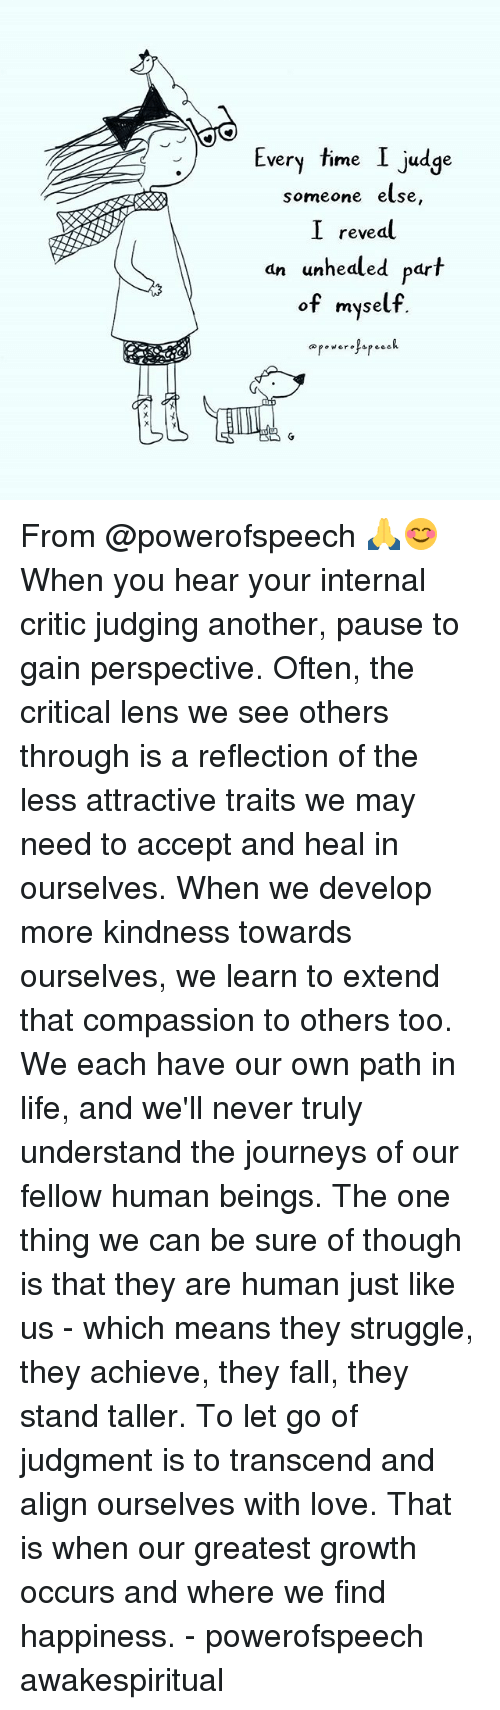 Oftenly: Every time I judge  very Time Judge  someone else,  I reveal  an unhealed part  dn unhedled par  of myself. From @powerofspeech 🙏😊 When you hear your internal critic judging another, pause to gain perspective. Often, the critical lens we see others through is a reflection of the less attractive traits we may need to accept and heal in ourselves. When we develop more kindness towards ourselves, we learn to extend that compassion to others too. We each have our own path in life, and we'll never truly understand the journeys of our fellow human beings. The one thing we can be sure of though is that they are human just like us - which means they struggle, they achieve, they fall, they stand taller. To let go of judgment is to transcend and align ourselves with love. That is when our greatest growth occurs and where we find happiness. - powerofspeech awakespiritual